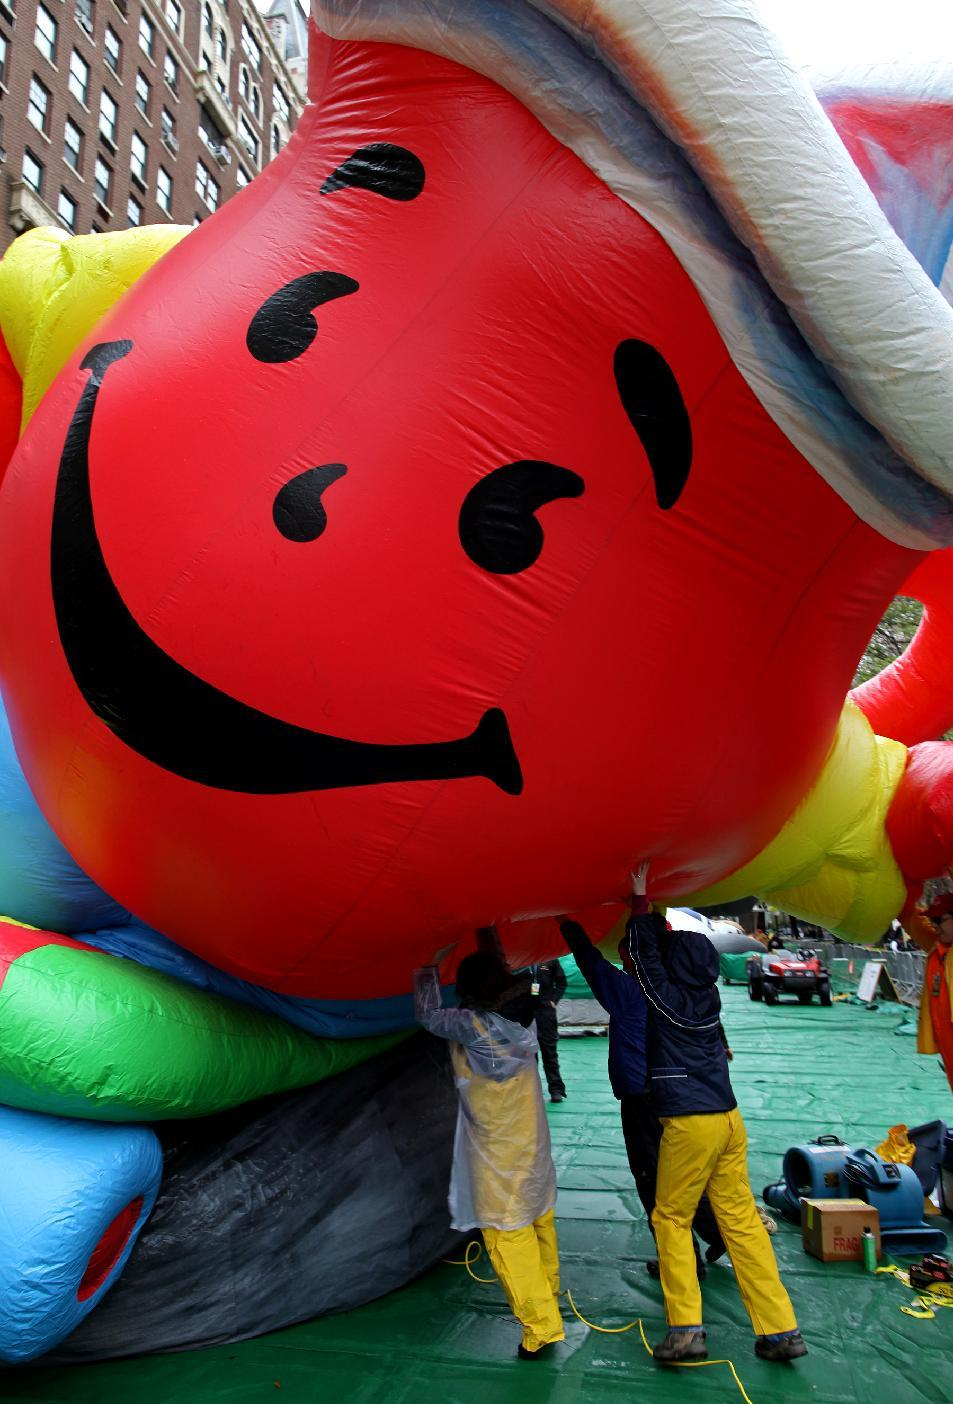 Technicians tip up the Kool-Aid Man balloon while it is inflated for the 85th annual Macy's Thanksgiving Day Parade Wednesday, Nov. 23, 2011 in preparation for Thursday's parade in New York. (AP Photo/Craig Ruttle)